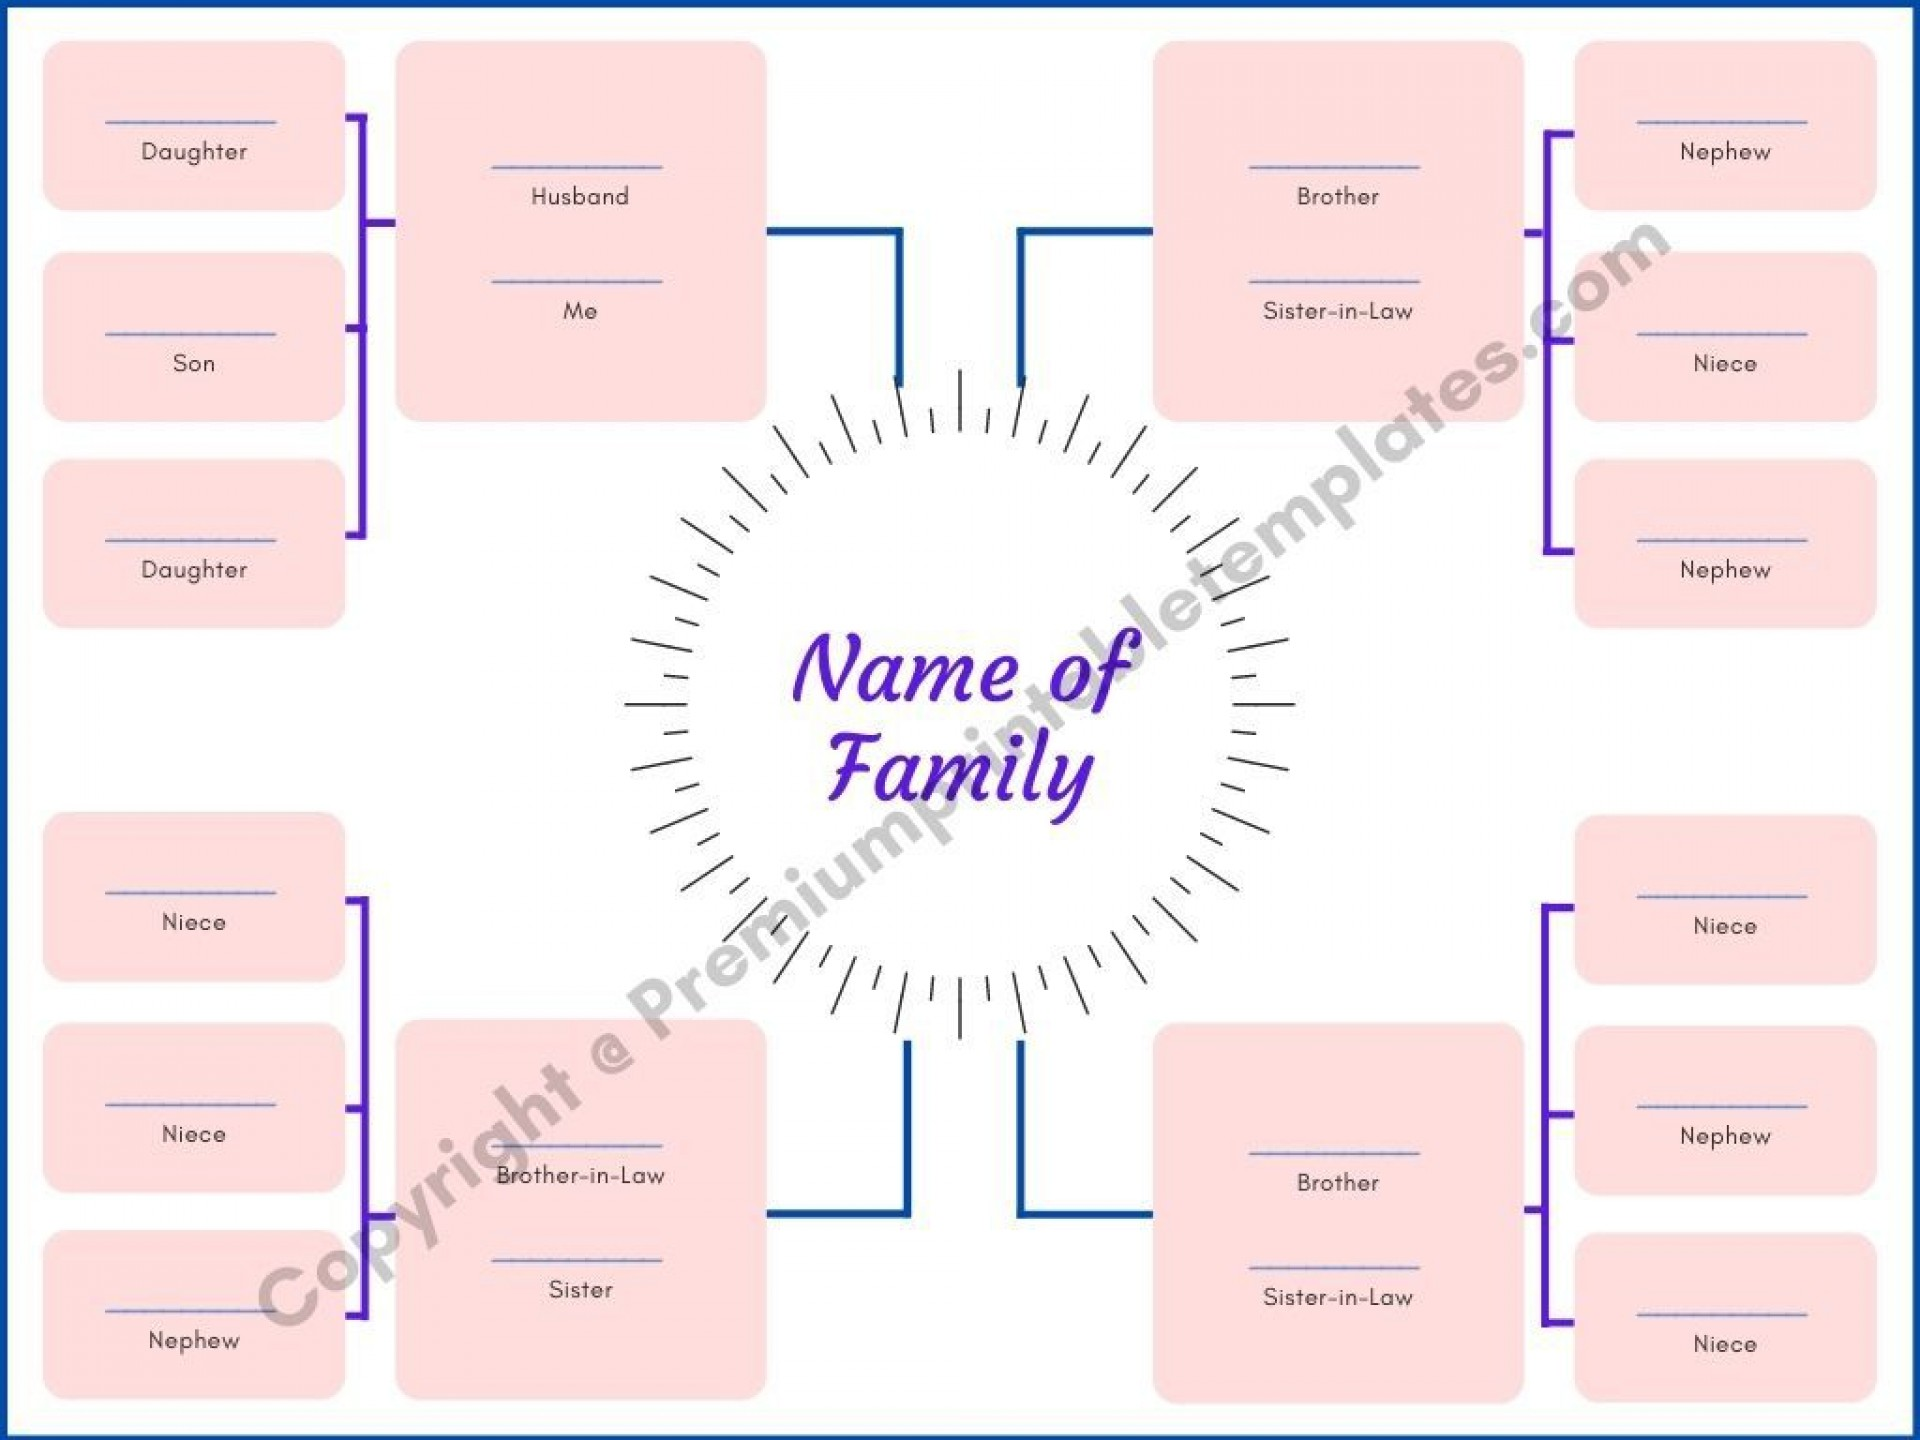 009 Wondrou Family Tree Template Word High Resolution  Free 2010 Doc Download1920